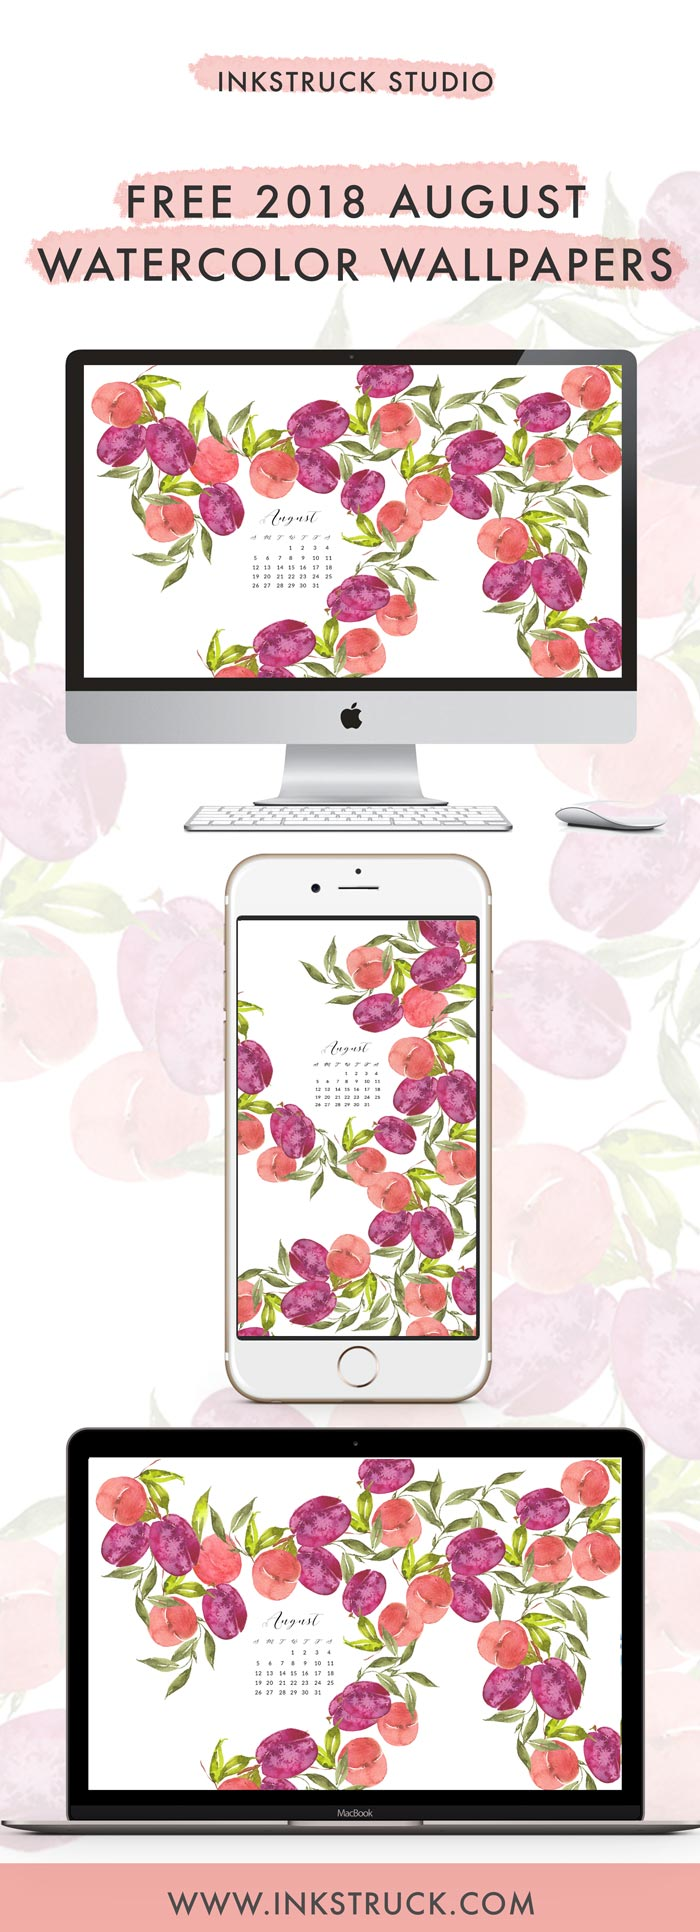 Grab my free 2018 August watercolor wallpapers on the blog now with both dated and undated versions for phones and desktops. - Inkstruck Studio